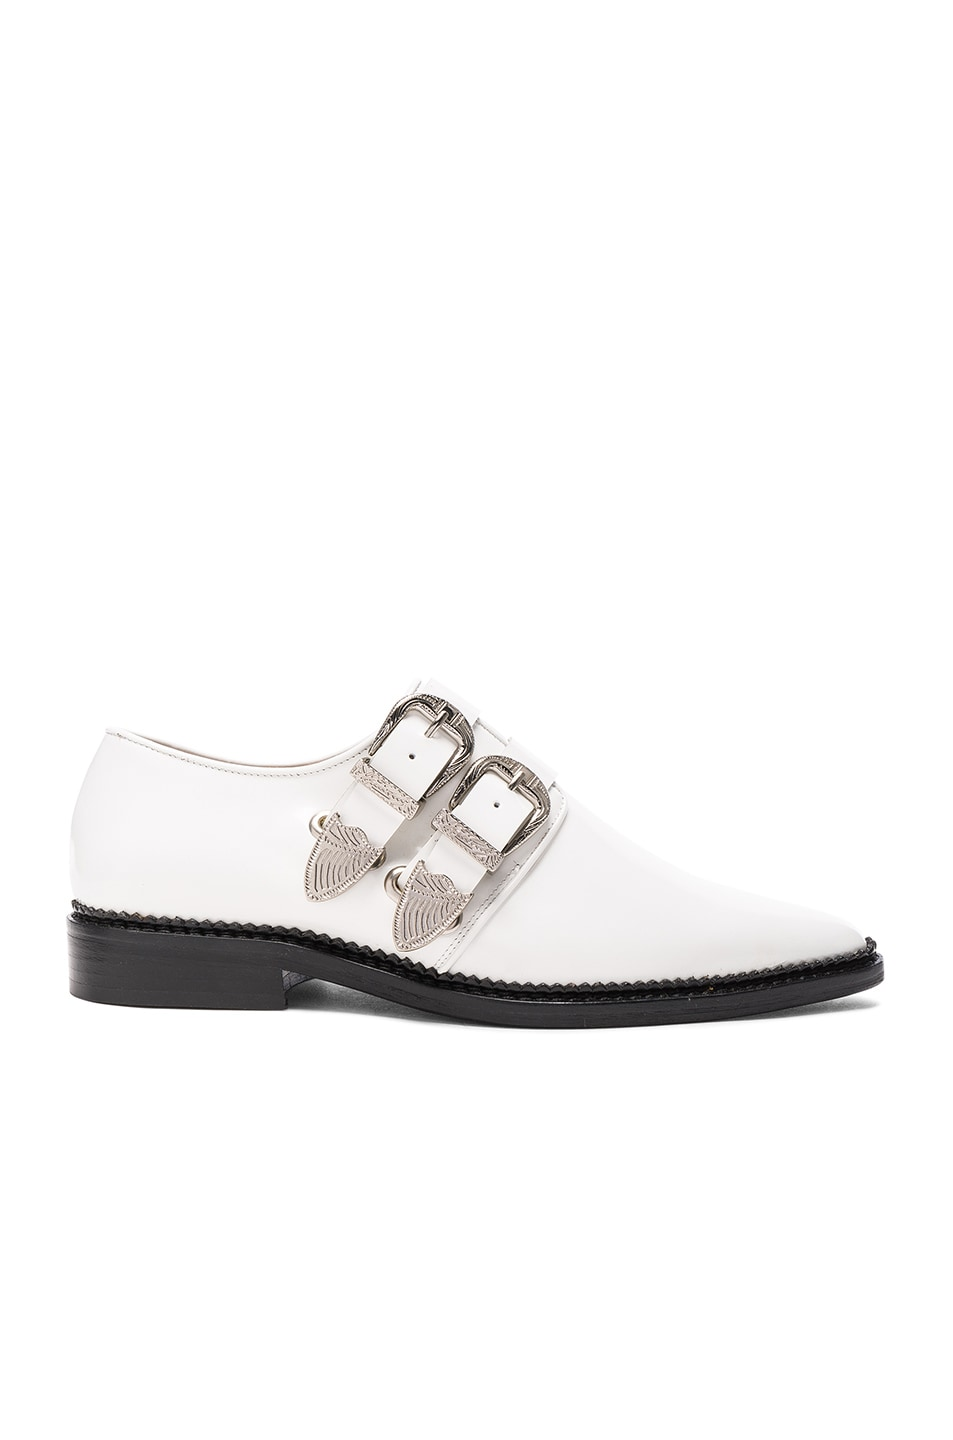 Image 1 of TOGA PULLA Leather Oxfords in White Polido